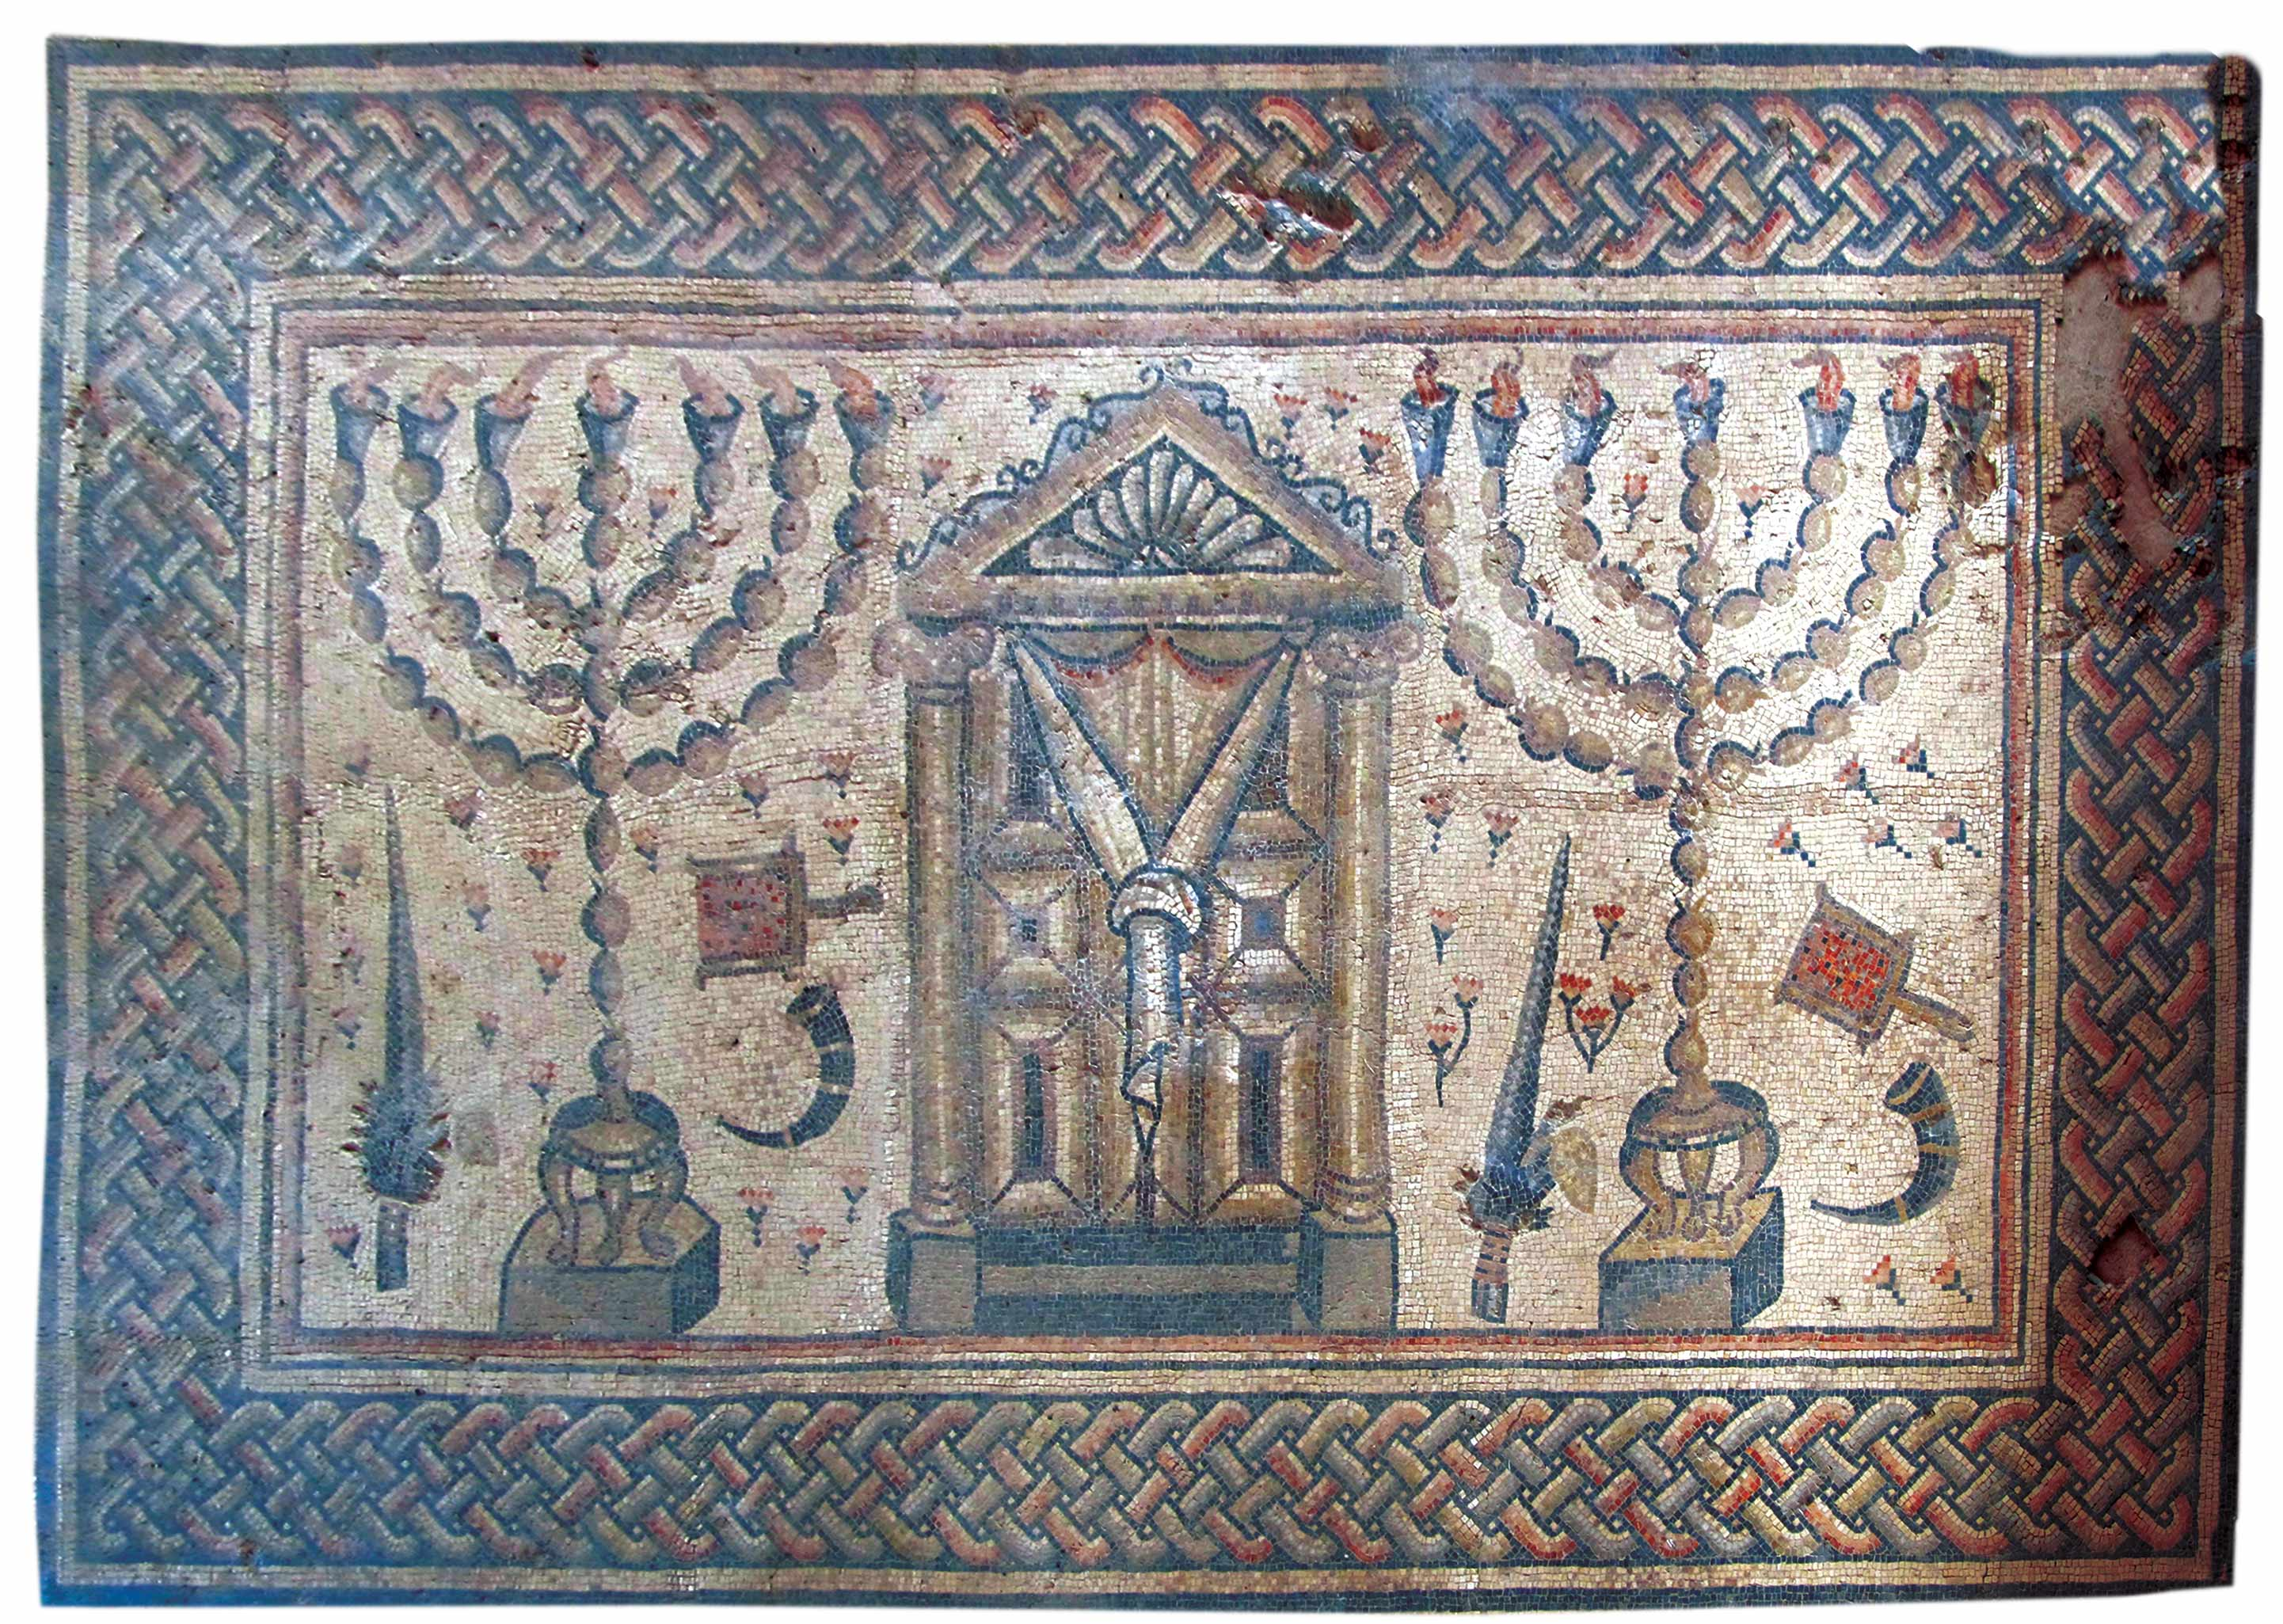 Shofars figure prominently in ancient synagogue mosaics. In this fragment from Hamat Tiberias, found in 1921 and dated to the third or fourth century, two shofars appear among the four species, seven-branched menoras, and coal pans surrounding what may represent the Temple façade